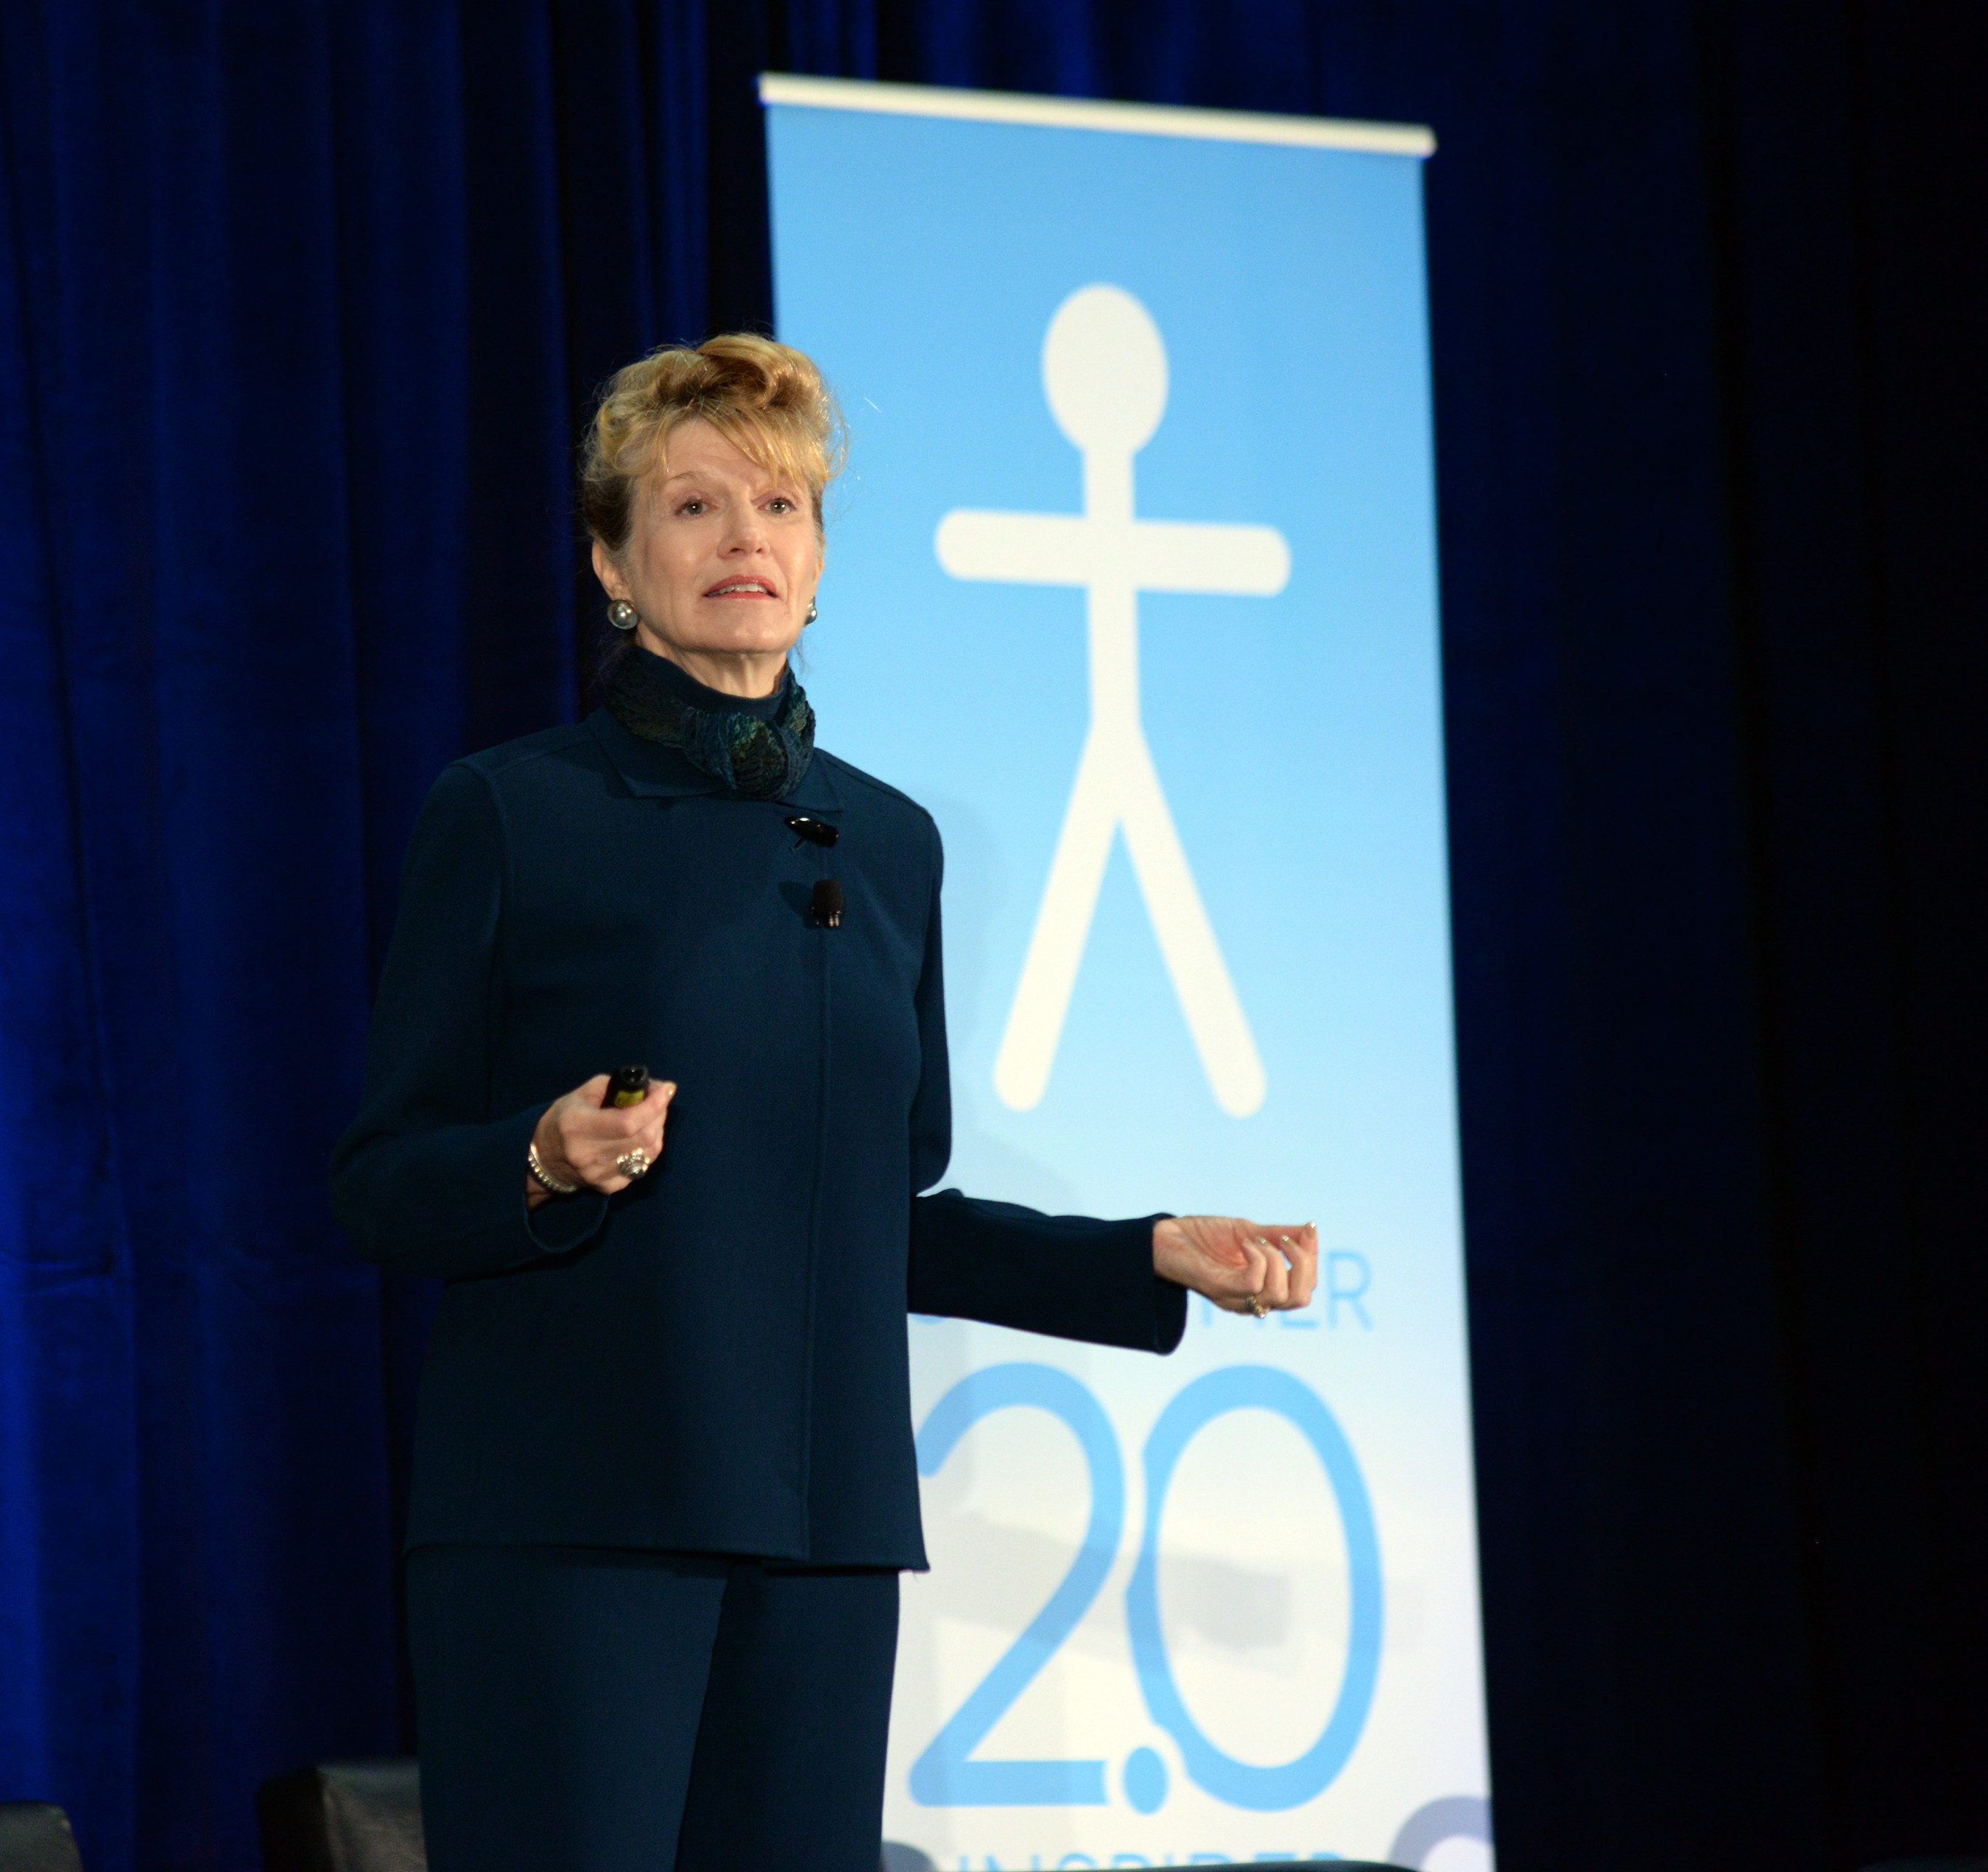 World-renowned business guru and best-selling author Dr. Martha Rogers says C Spire is poised to become an industry leader in the customer experience movement.